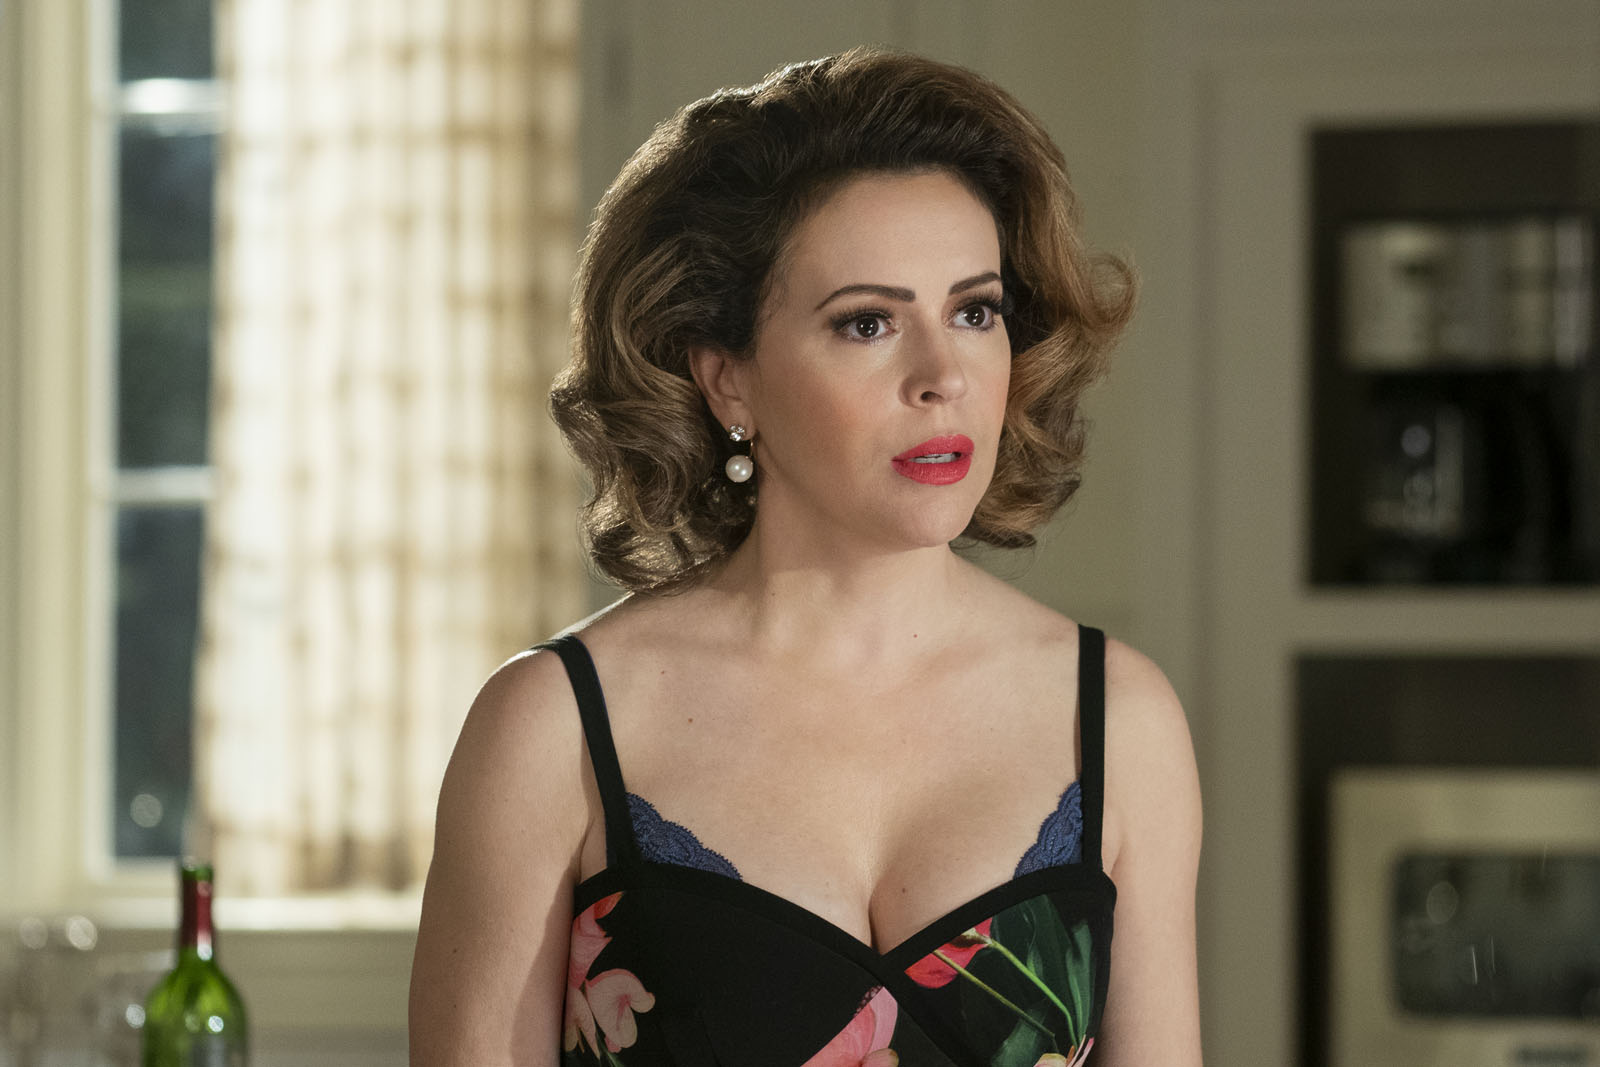 20 Things You Probably Didn't Know About Alyssa Milano